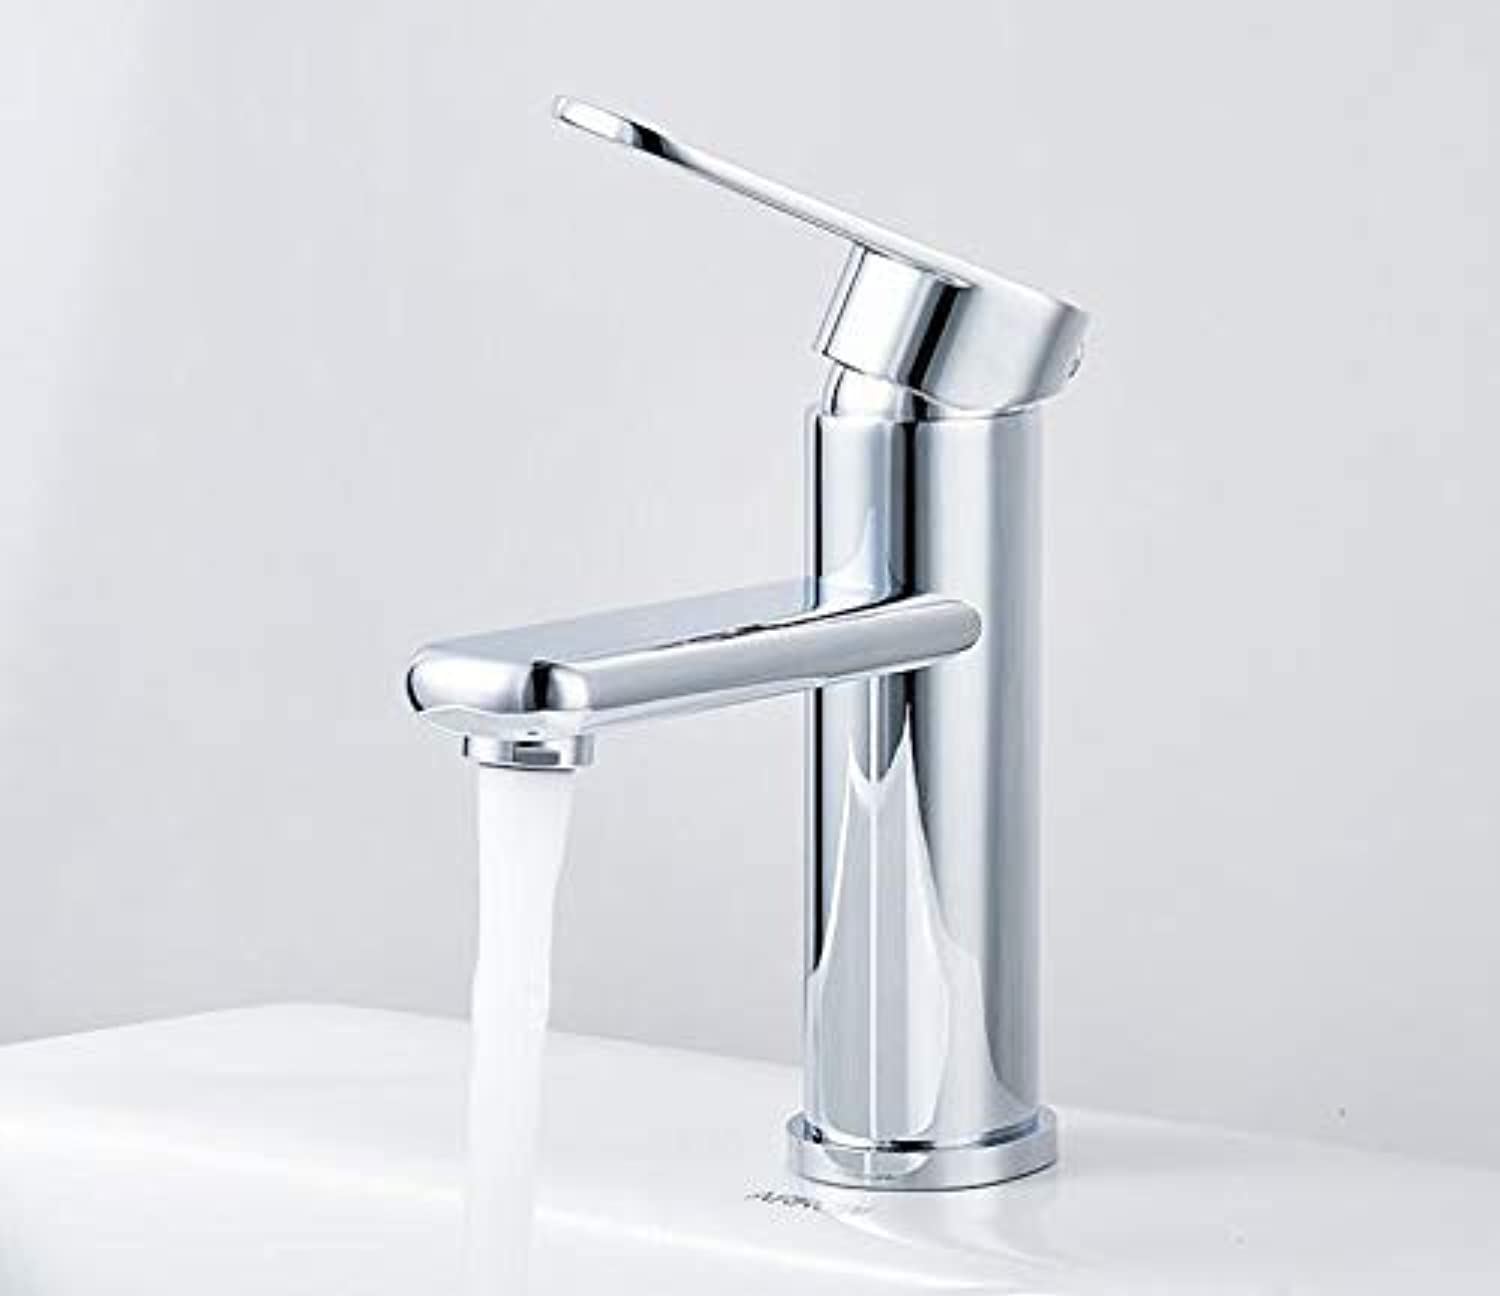 Oudan Hot and Cold Wash Basin Sink Basin Bathroom Faucet Ceramic Valve Core, Long Round Basin Faucet (color   Short Round Basin Faucet, Size   -)